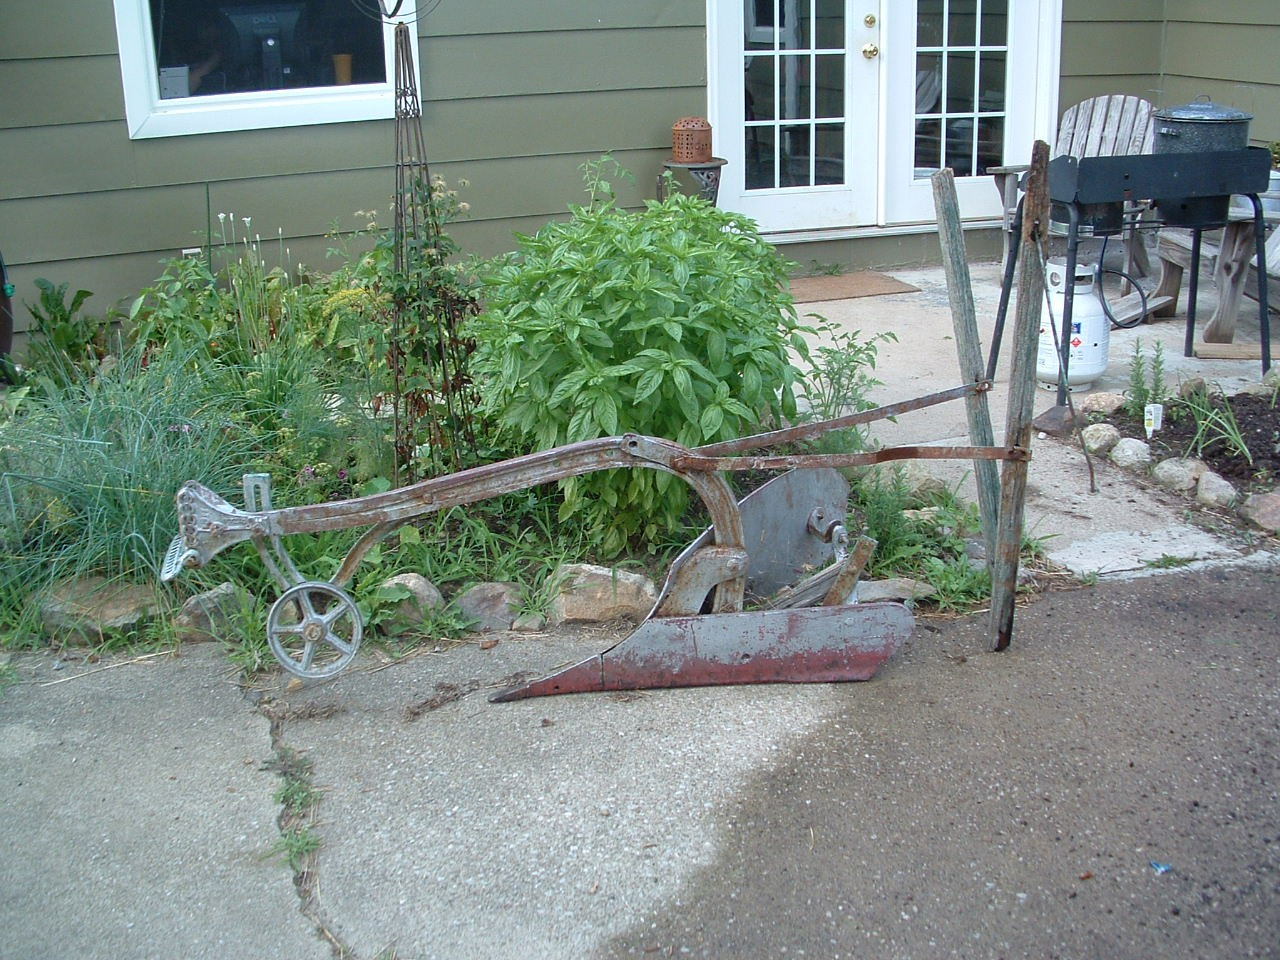 Horse Drawn Turning Plow http://ohiomicrofarm.blogspot.com/2011/08/farm-primitives.html